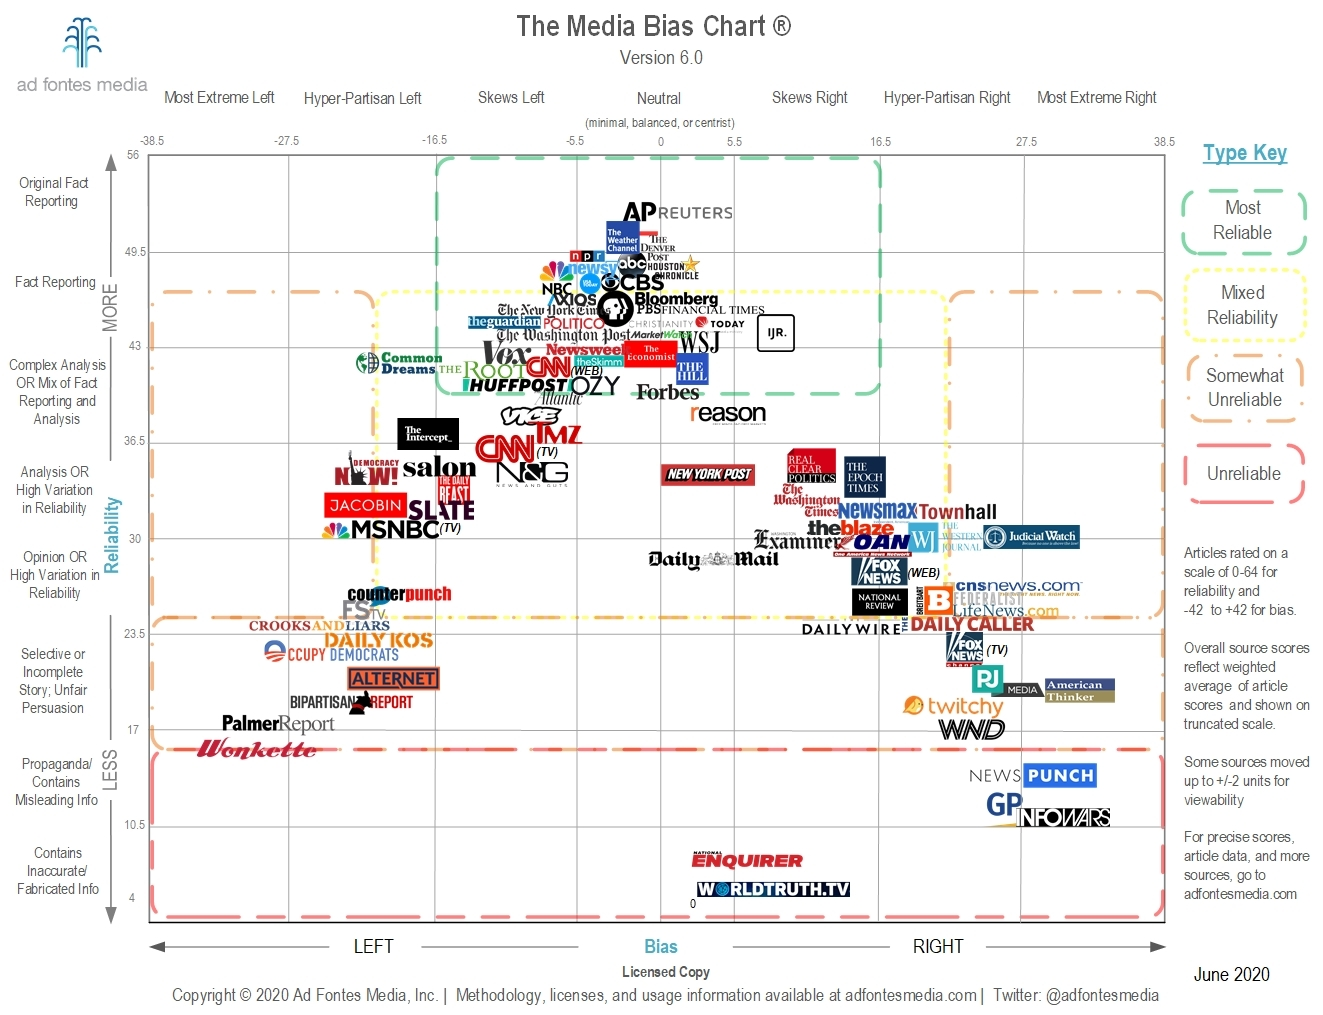 Media Bias Chart 6.0: Downloadable Image and Standard License - Ad Fontes  Media